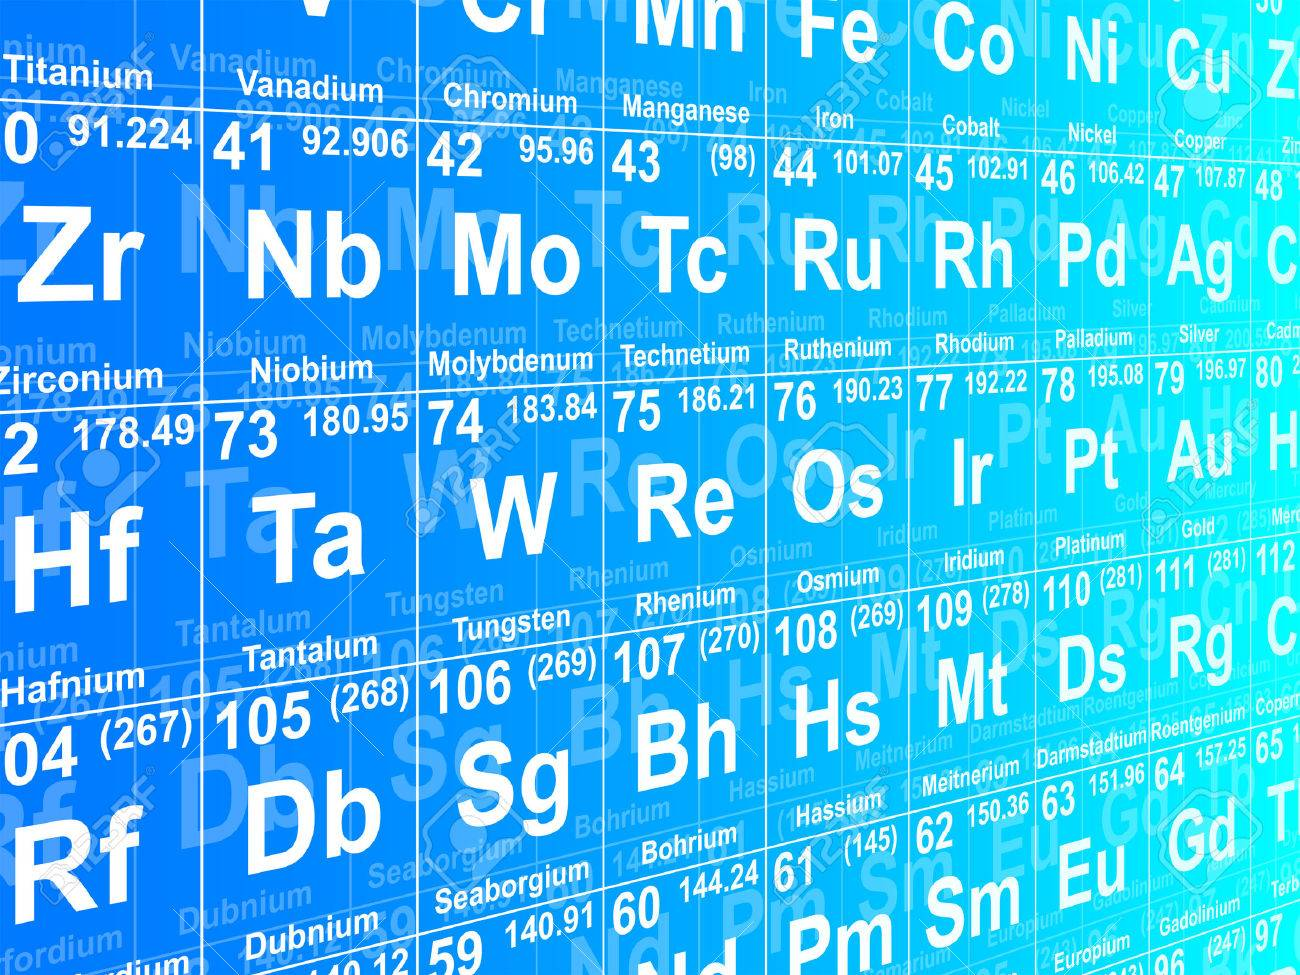 Ru element periodic table image collections periodic table images ai element periodic table image collections periodic table images uuu periodic table choice image periodic table gamestrikefo Gallery